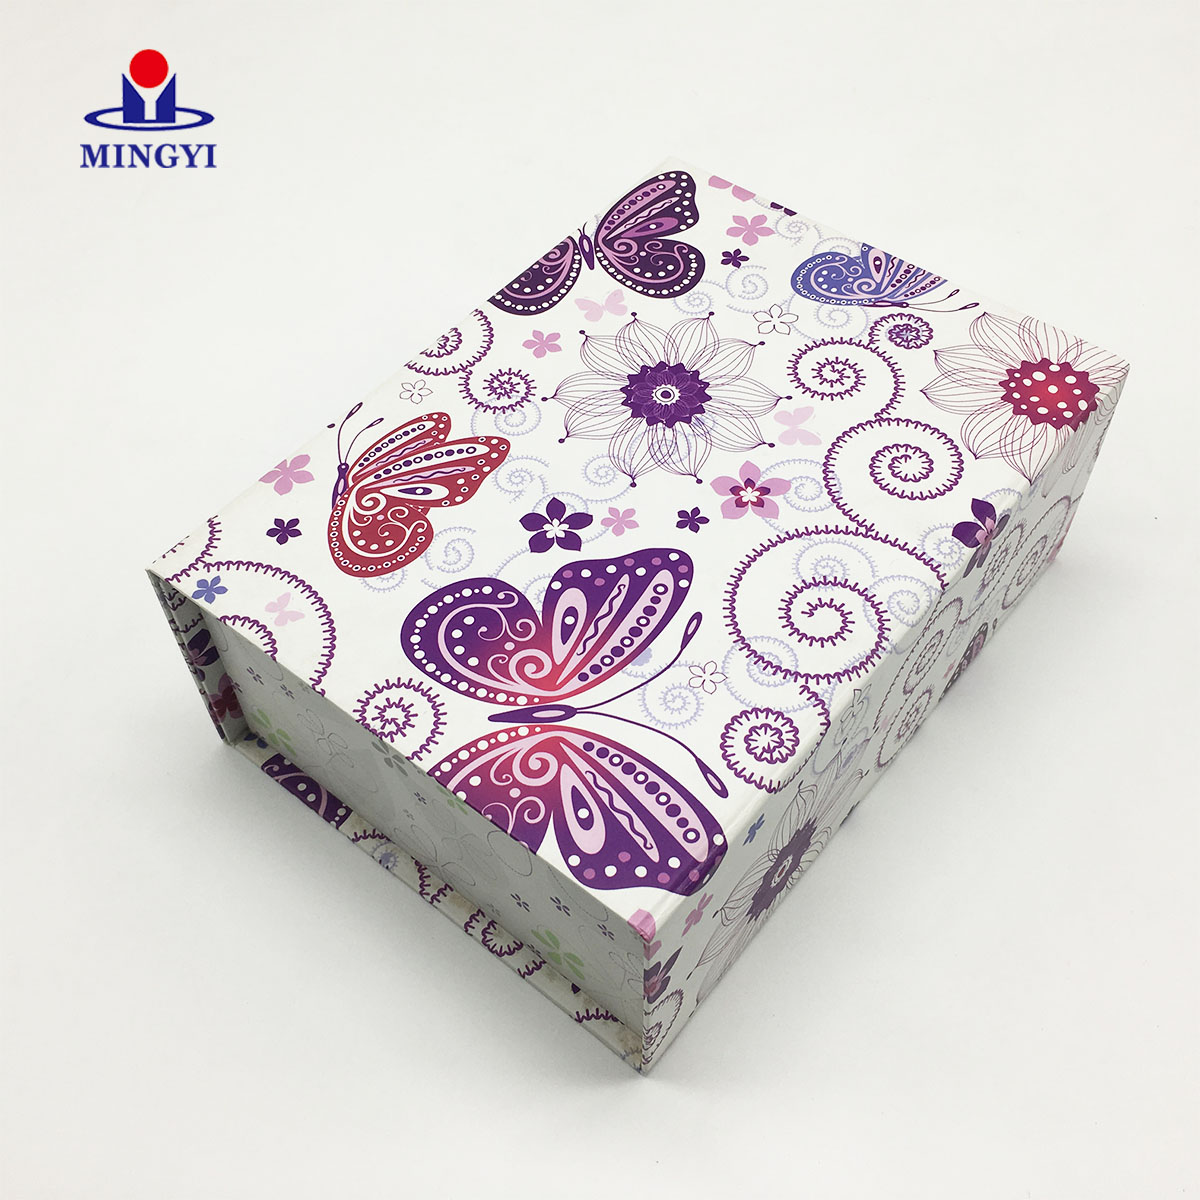 Health Care Products Packaging Handle Gift Hair Straightener Glass Jar Fruit Carton Apples Food Packing Hemp Paper Box